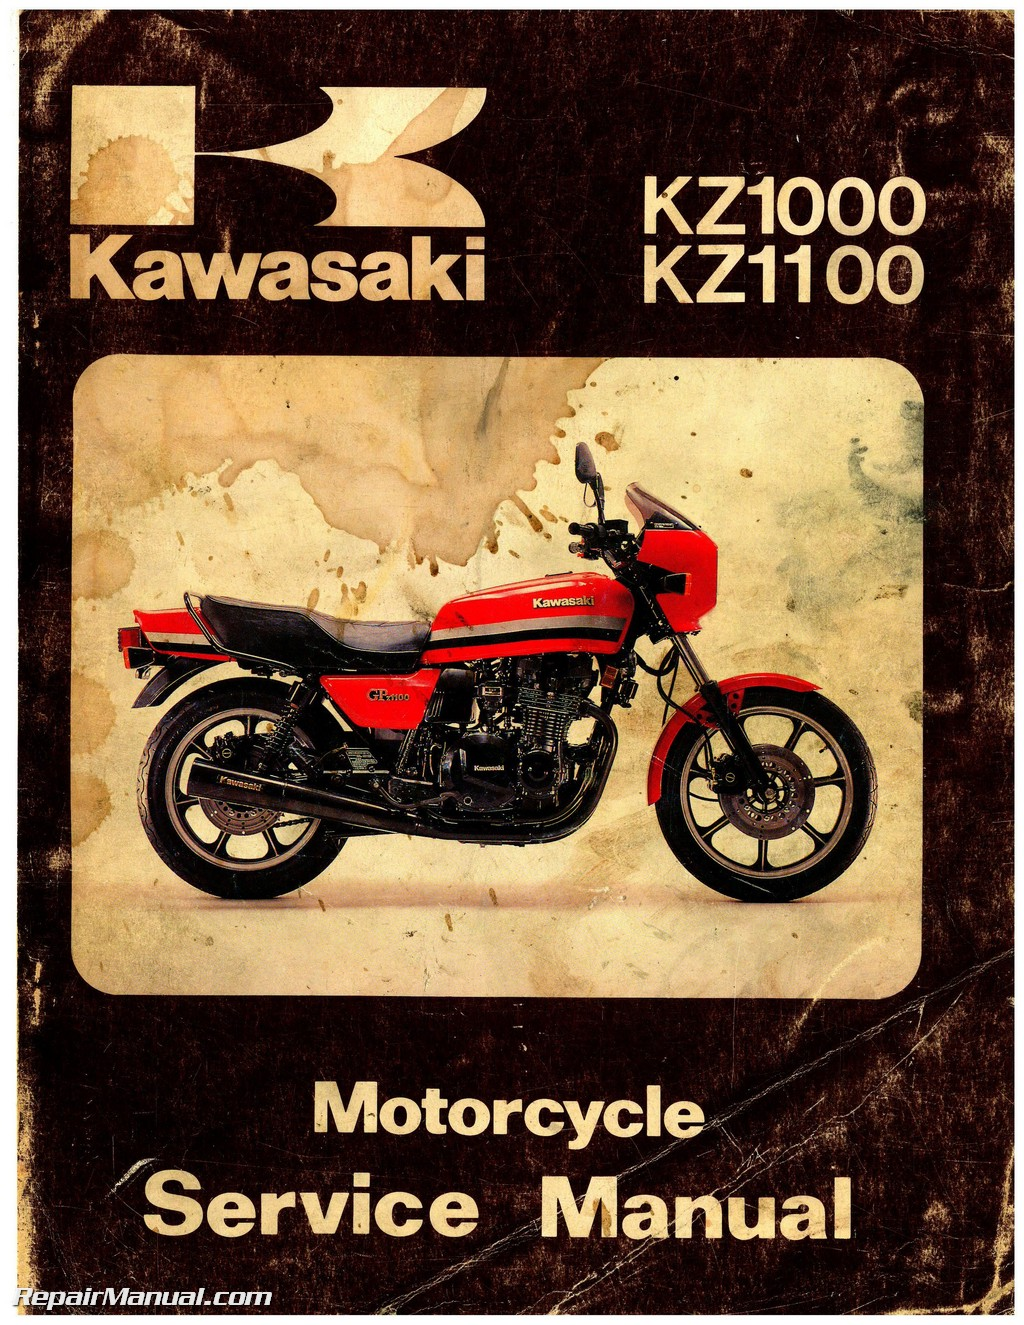 1981-1982 Kawasaki KZ1000 KZ1100 Motorcycle Repair Service Manual on 1980 k z diagram, 1978 kz1000 lighting diagram, kz1000 parts diagram,